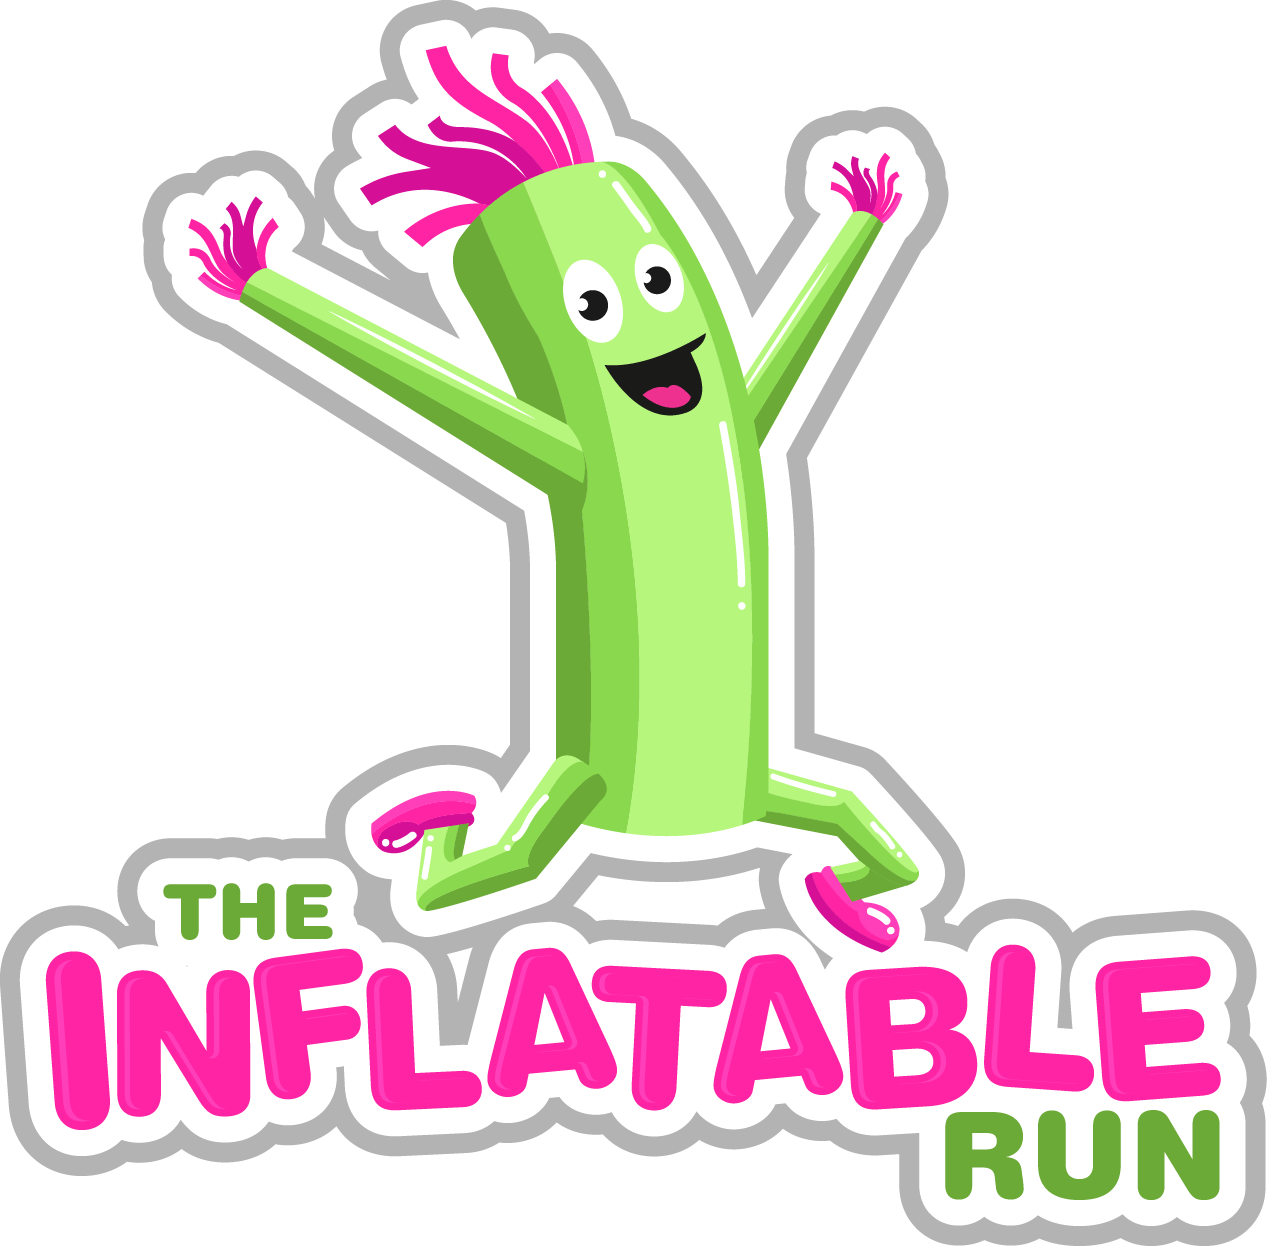 The inflatable run ocr. Mud clipart muddy road